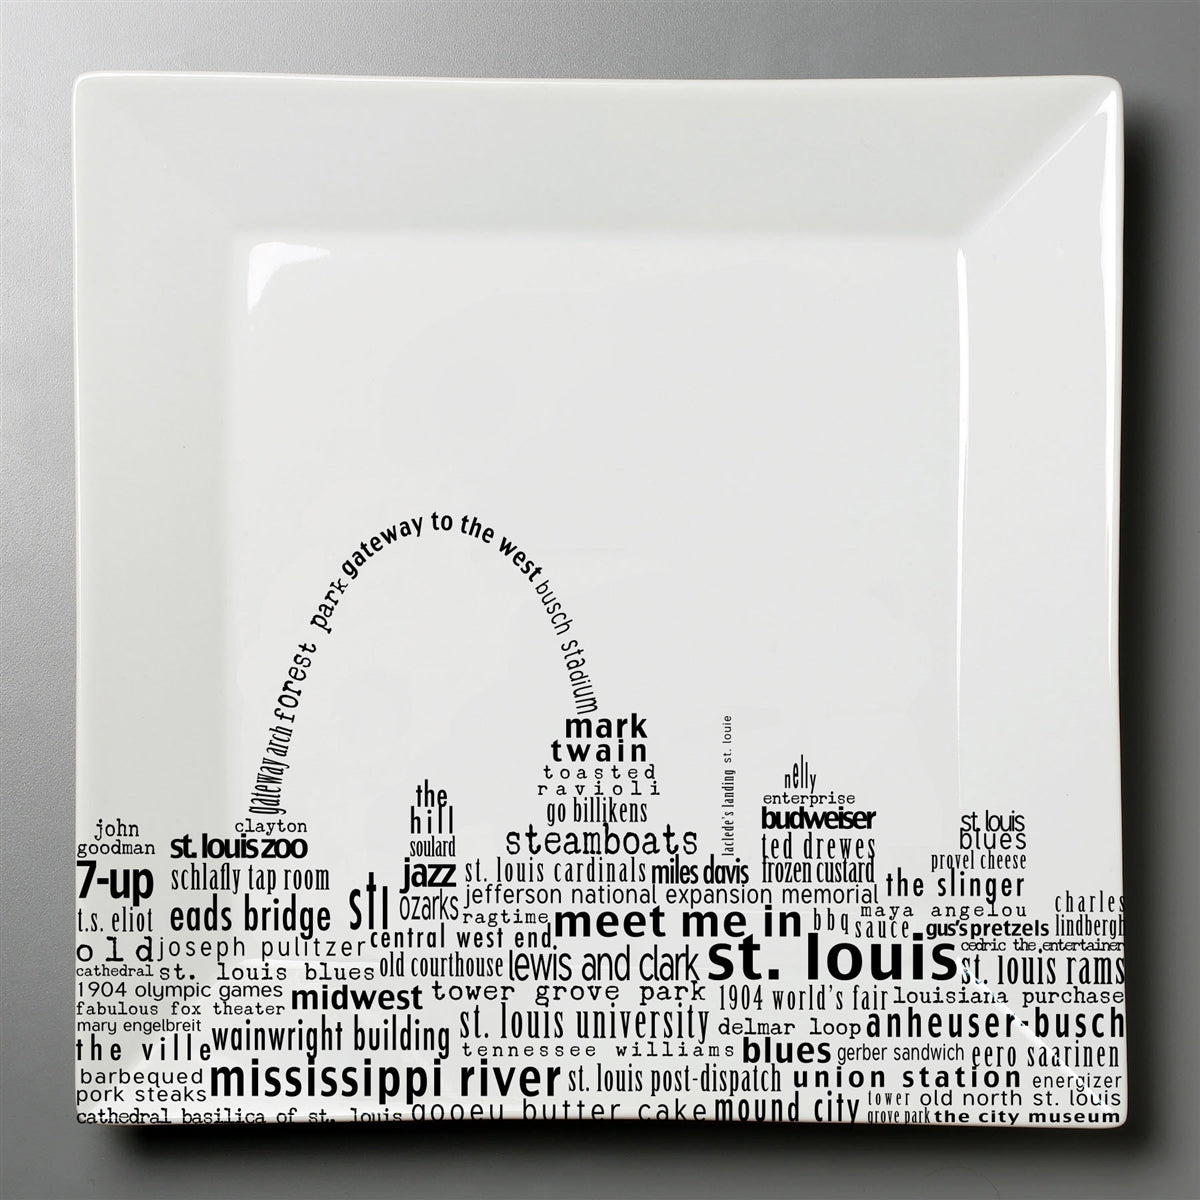 St. Louis Dish - Large Square Plate